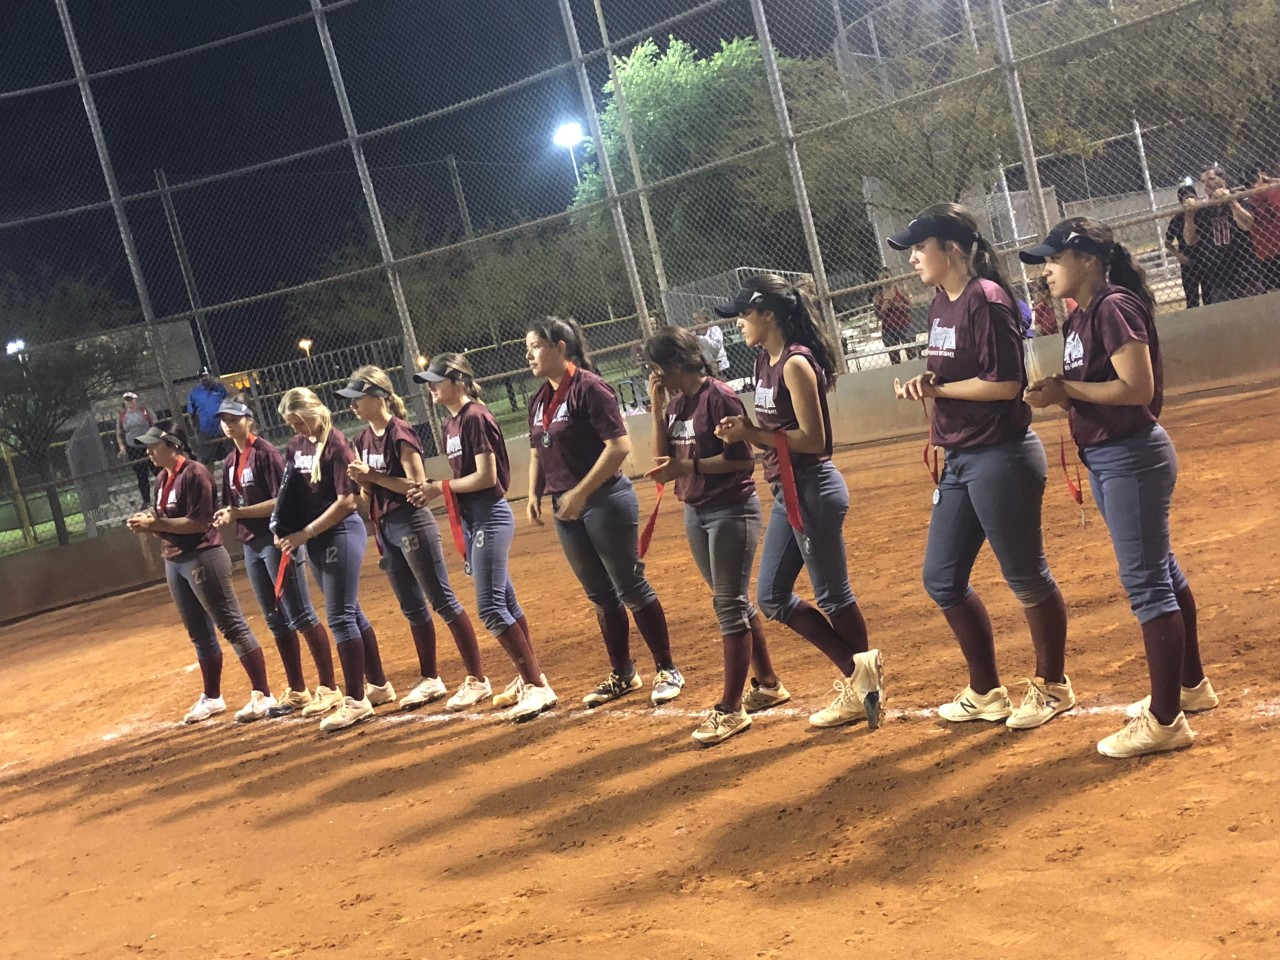 2018 18u Runner up pic USA Softball 2